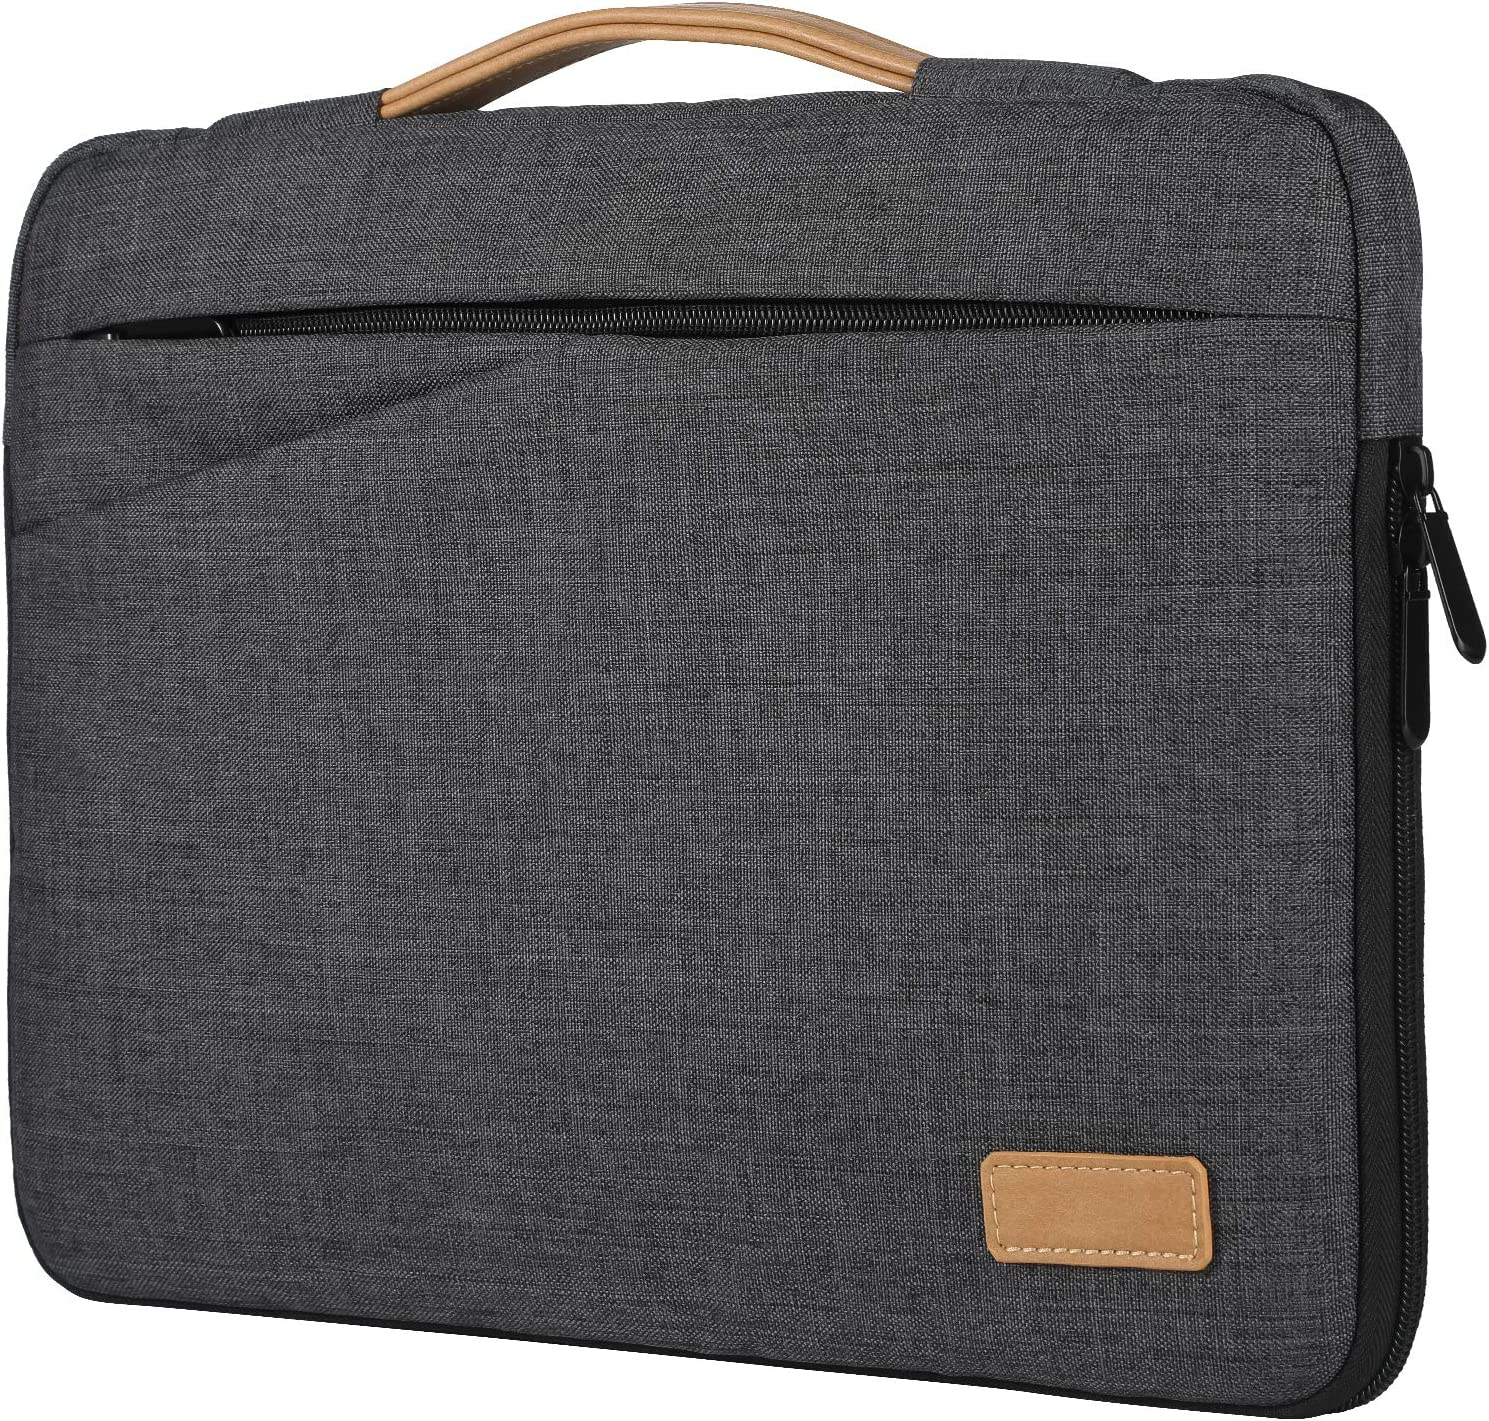 OULUOQI Laptop Sleeve 13 inch,Waterproof and Shockproof Computer Bag with Pocket Compatible with MacBook Air, Notebook Computer 13 inch - Dark Grey